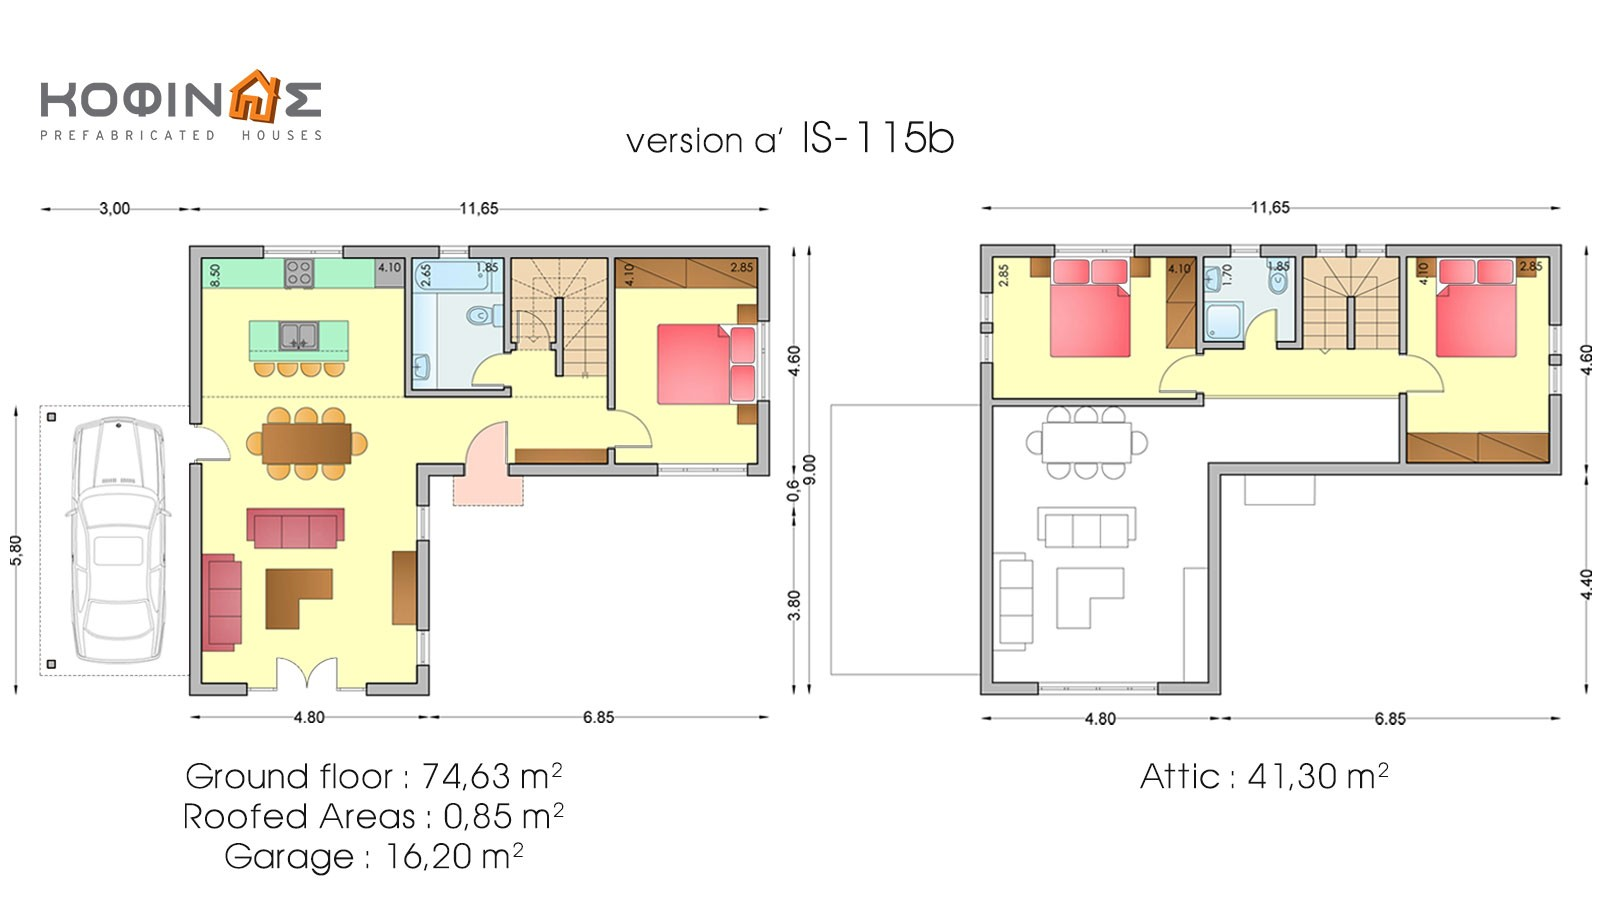 1-story house with attic IS-115b, total surface of 115,90 m²